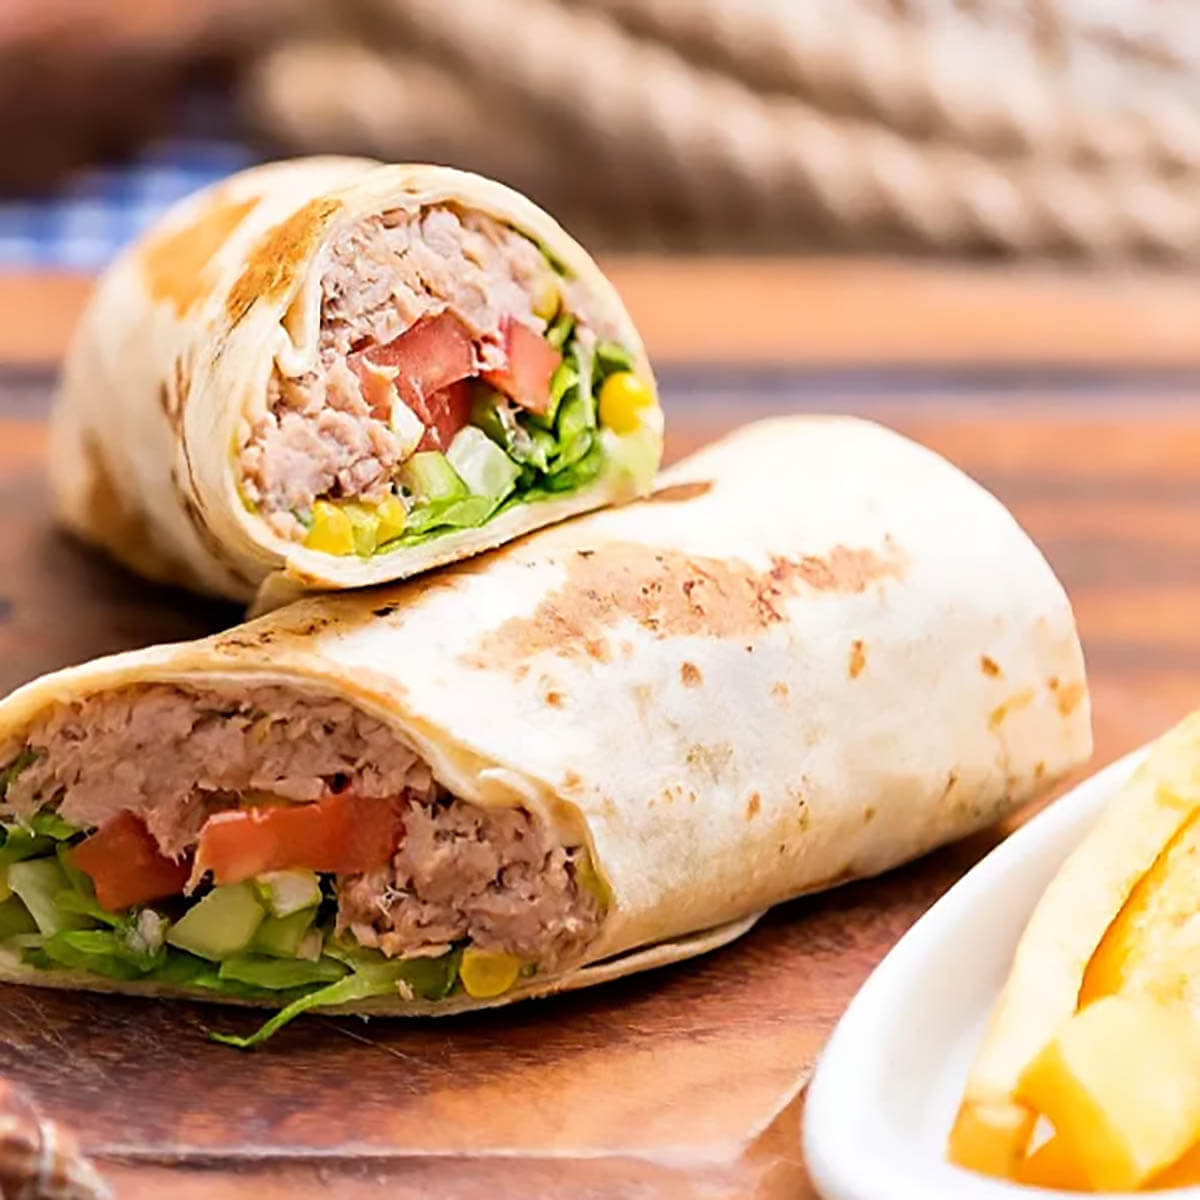 Tuna Sandwich wrap on plate served with fries.